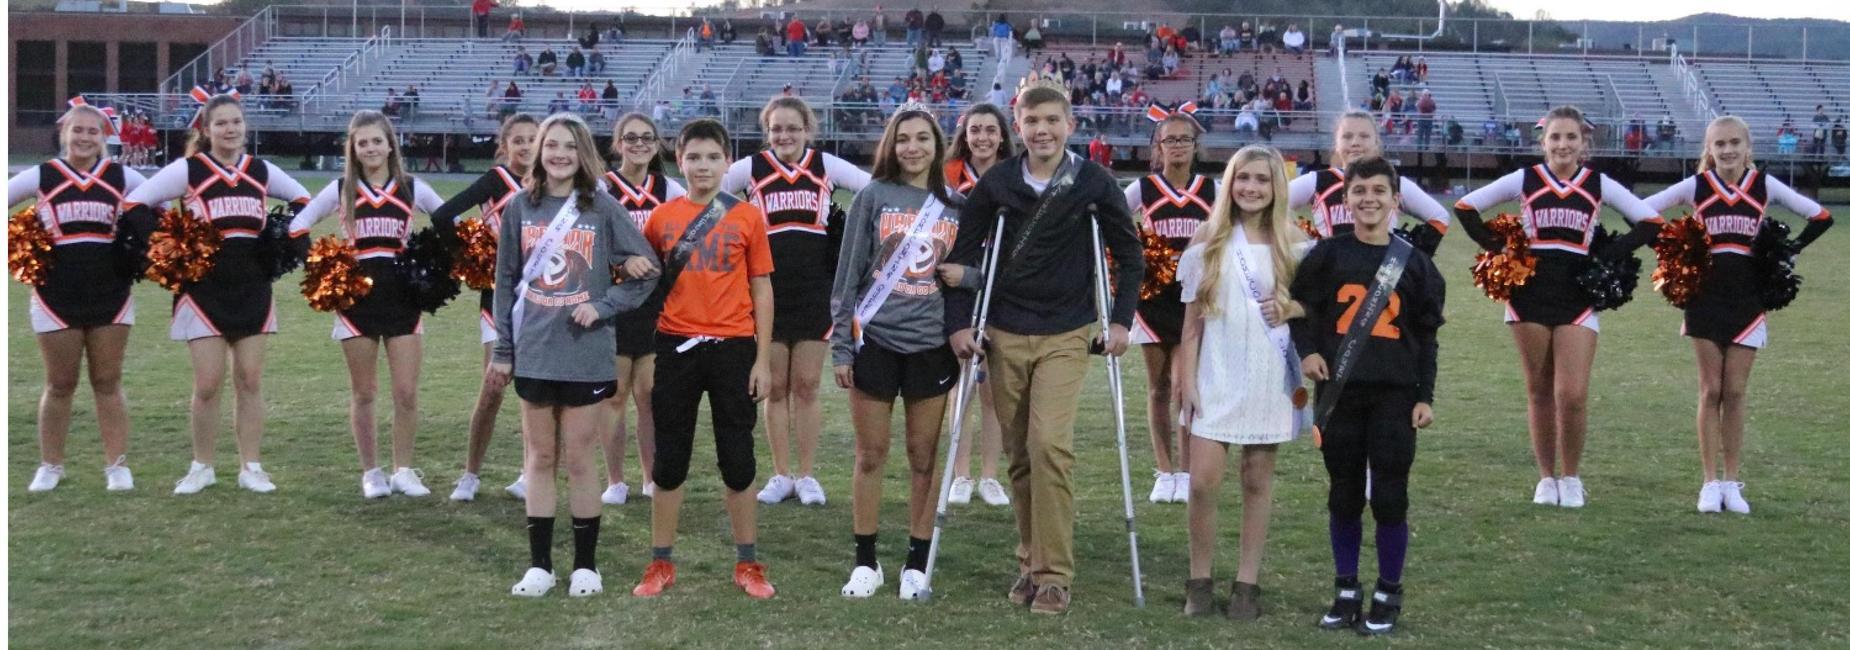 CMS homecoming court at the football game